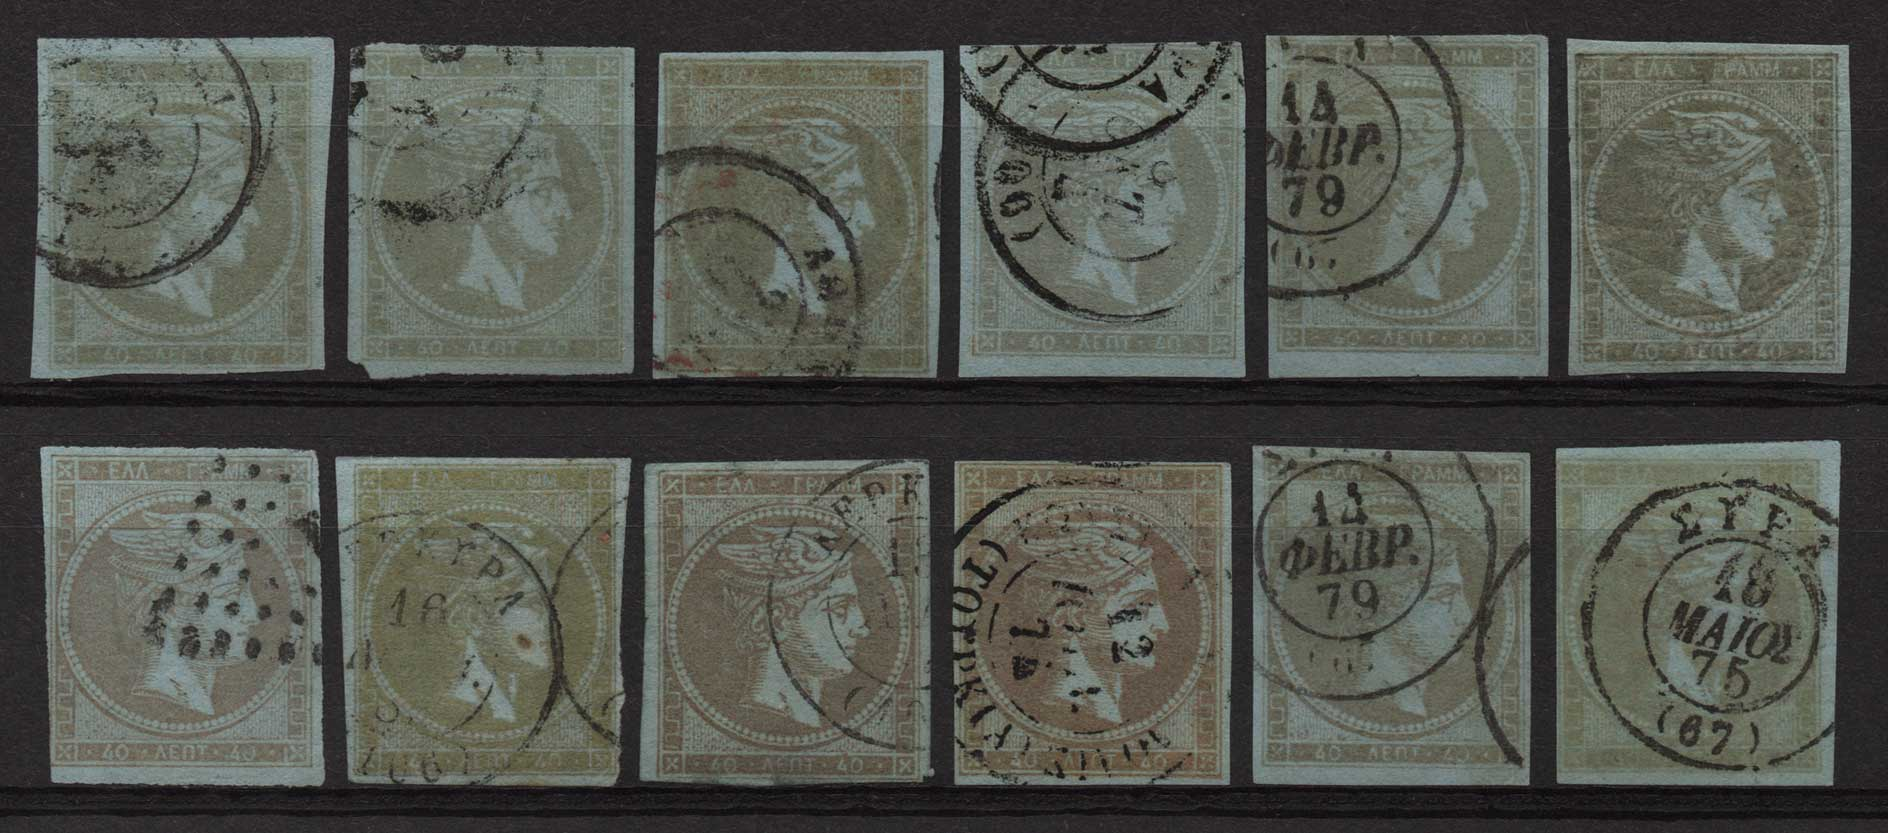 Lot 15 - large hermes head large hermes head -  Athens Auctions Public Auction 72 General Stamp Sale